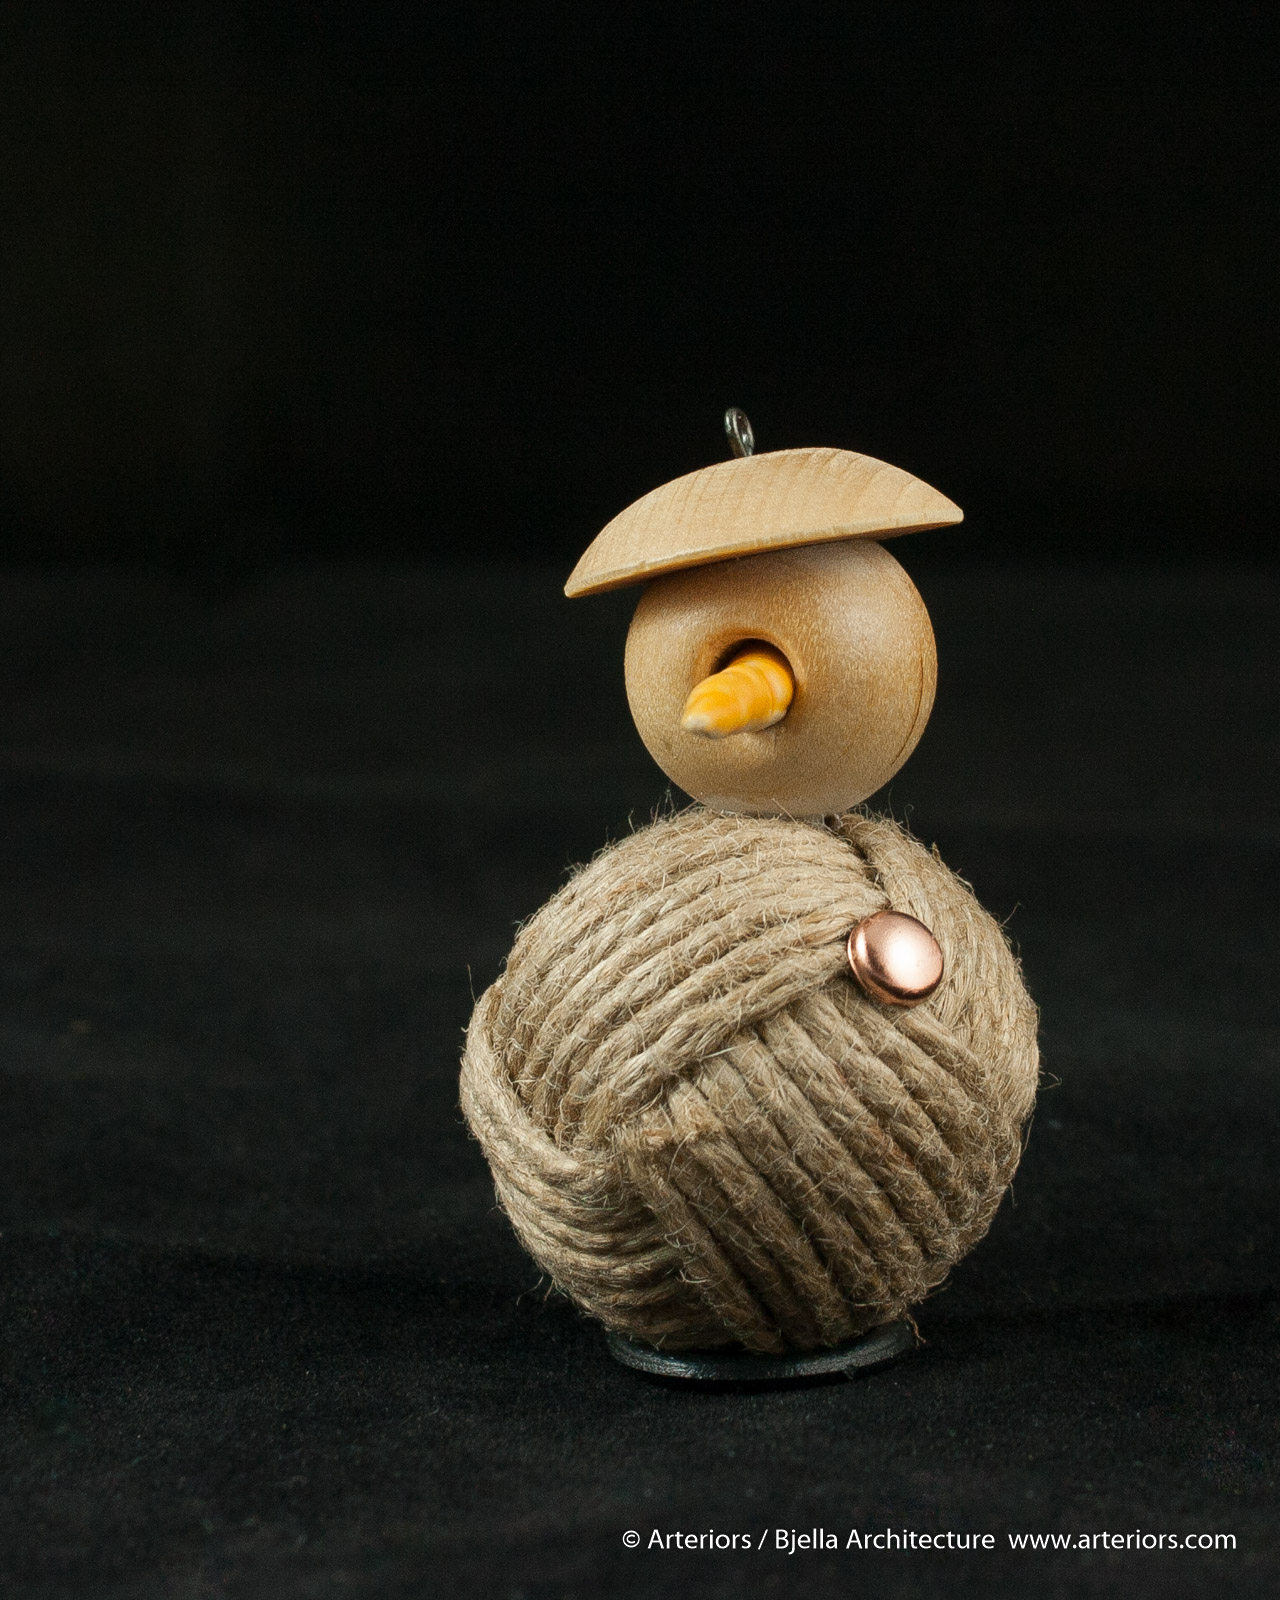 Bjella Snowman Ornament - Day 11 - Rope-13